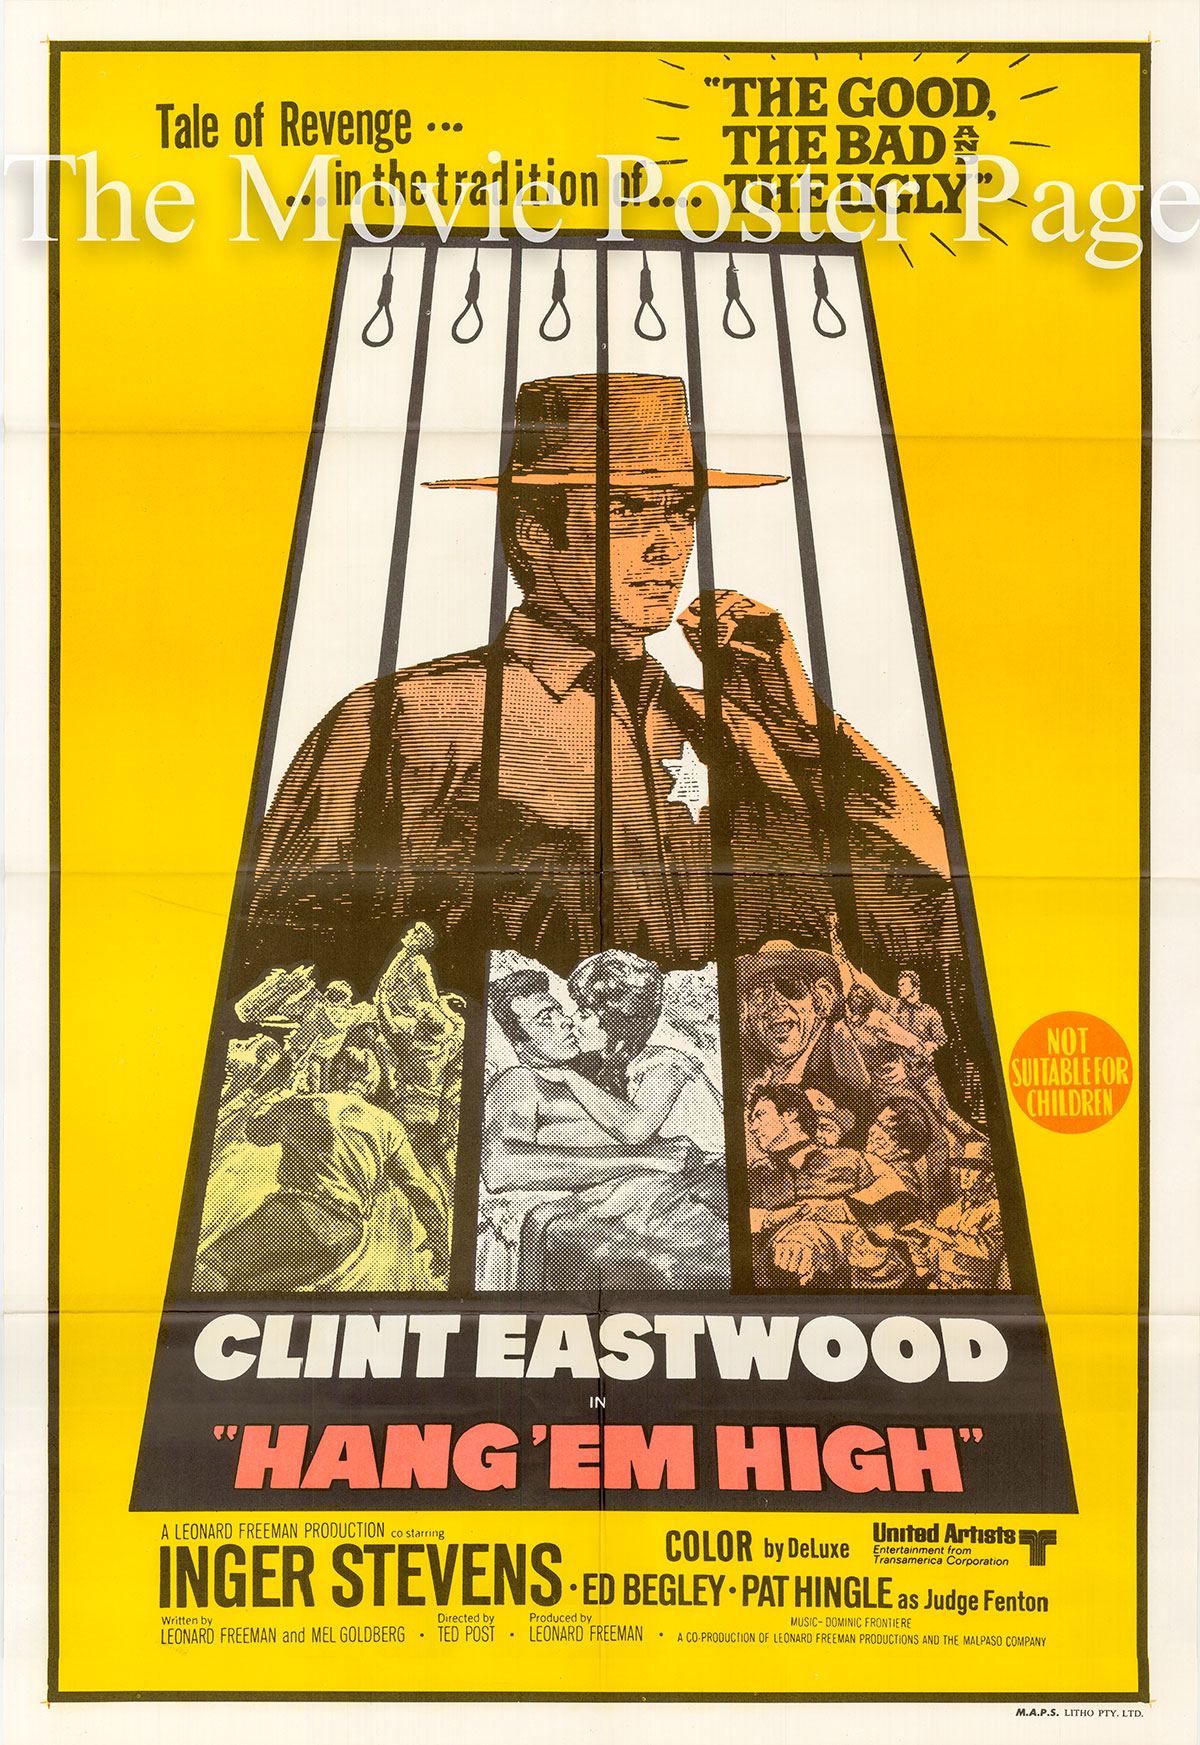 Pictured is an Australian one-sheet poster for the 1968 Ted Post film Hang 'em High starring Clint Eastwood as Marshal Jed Cooper.